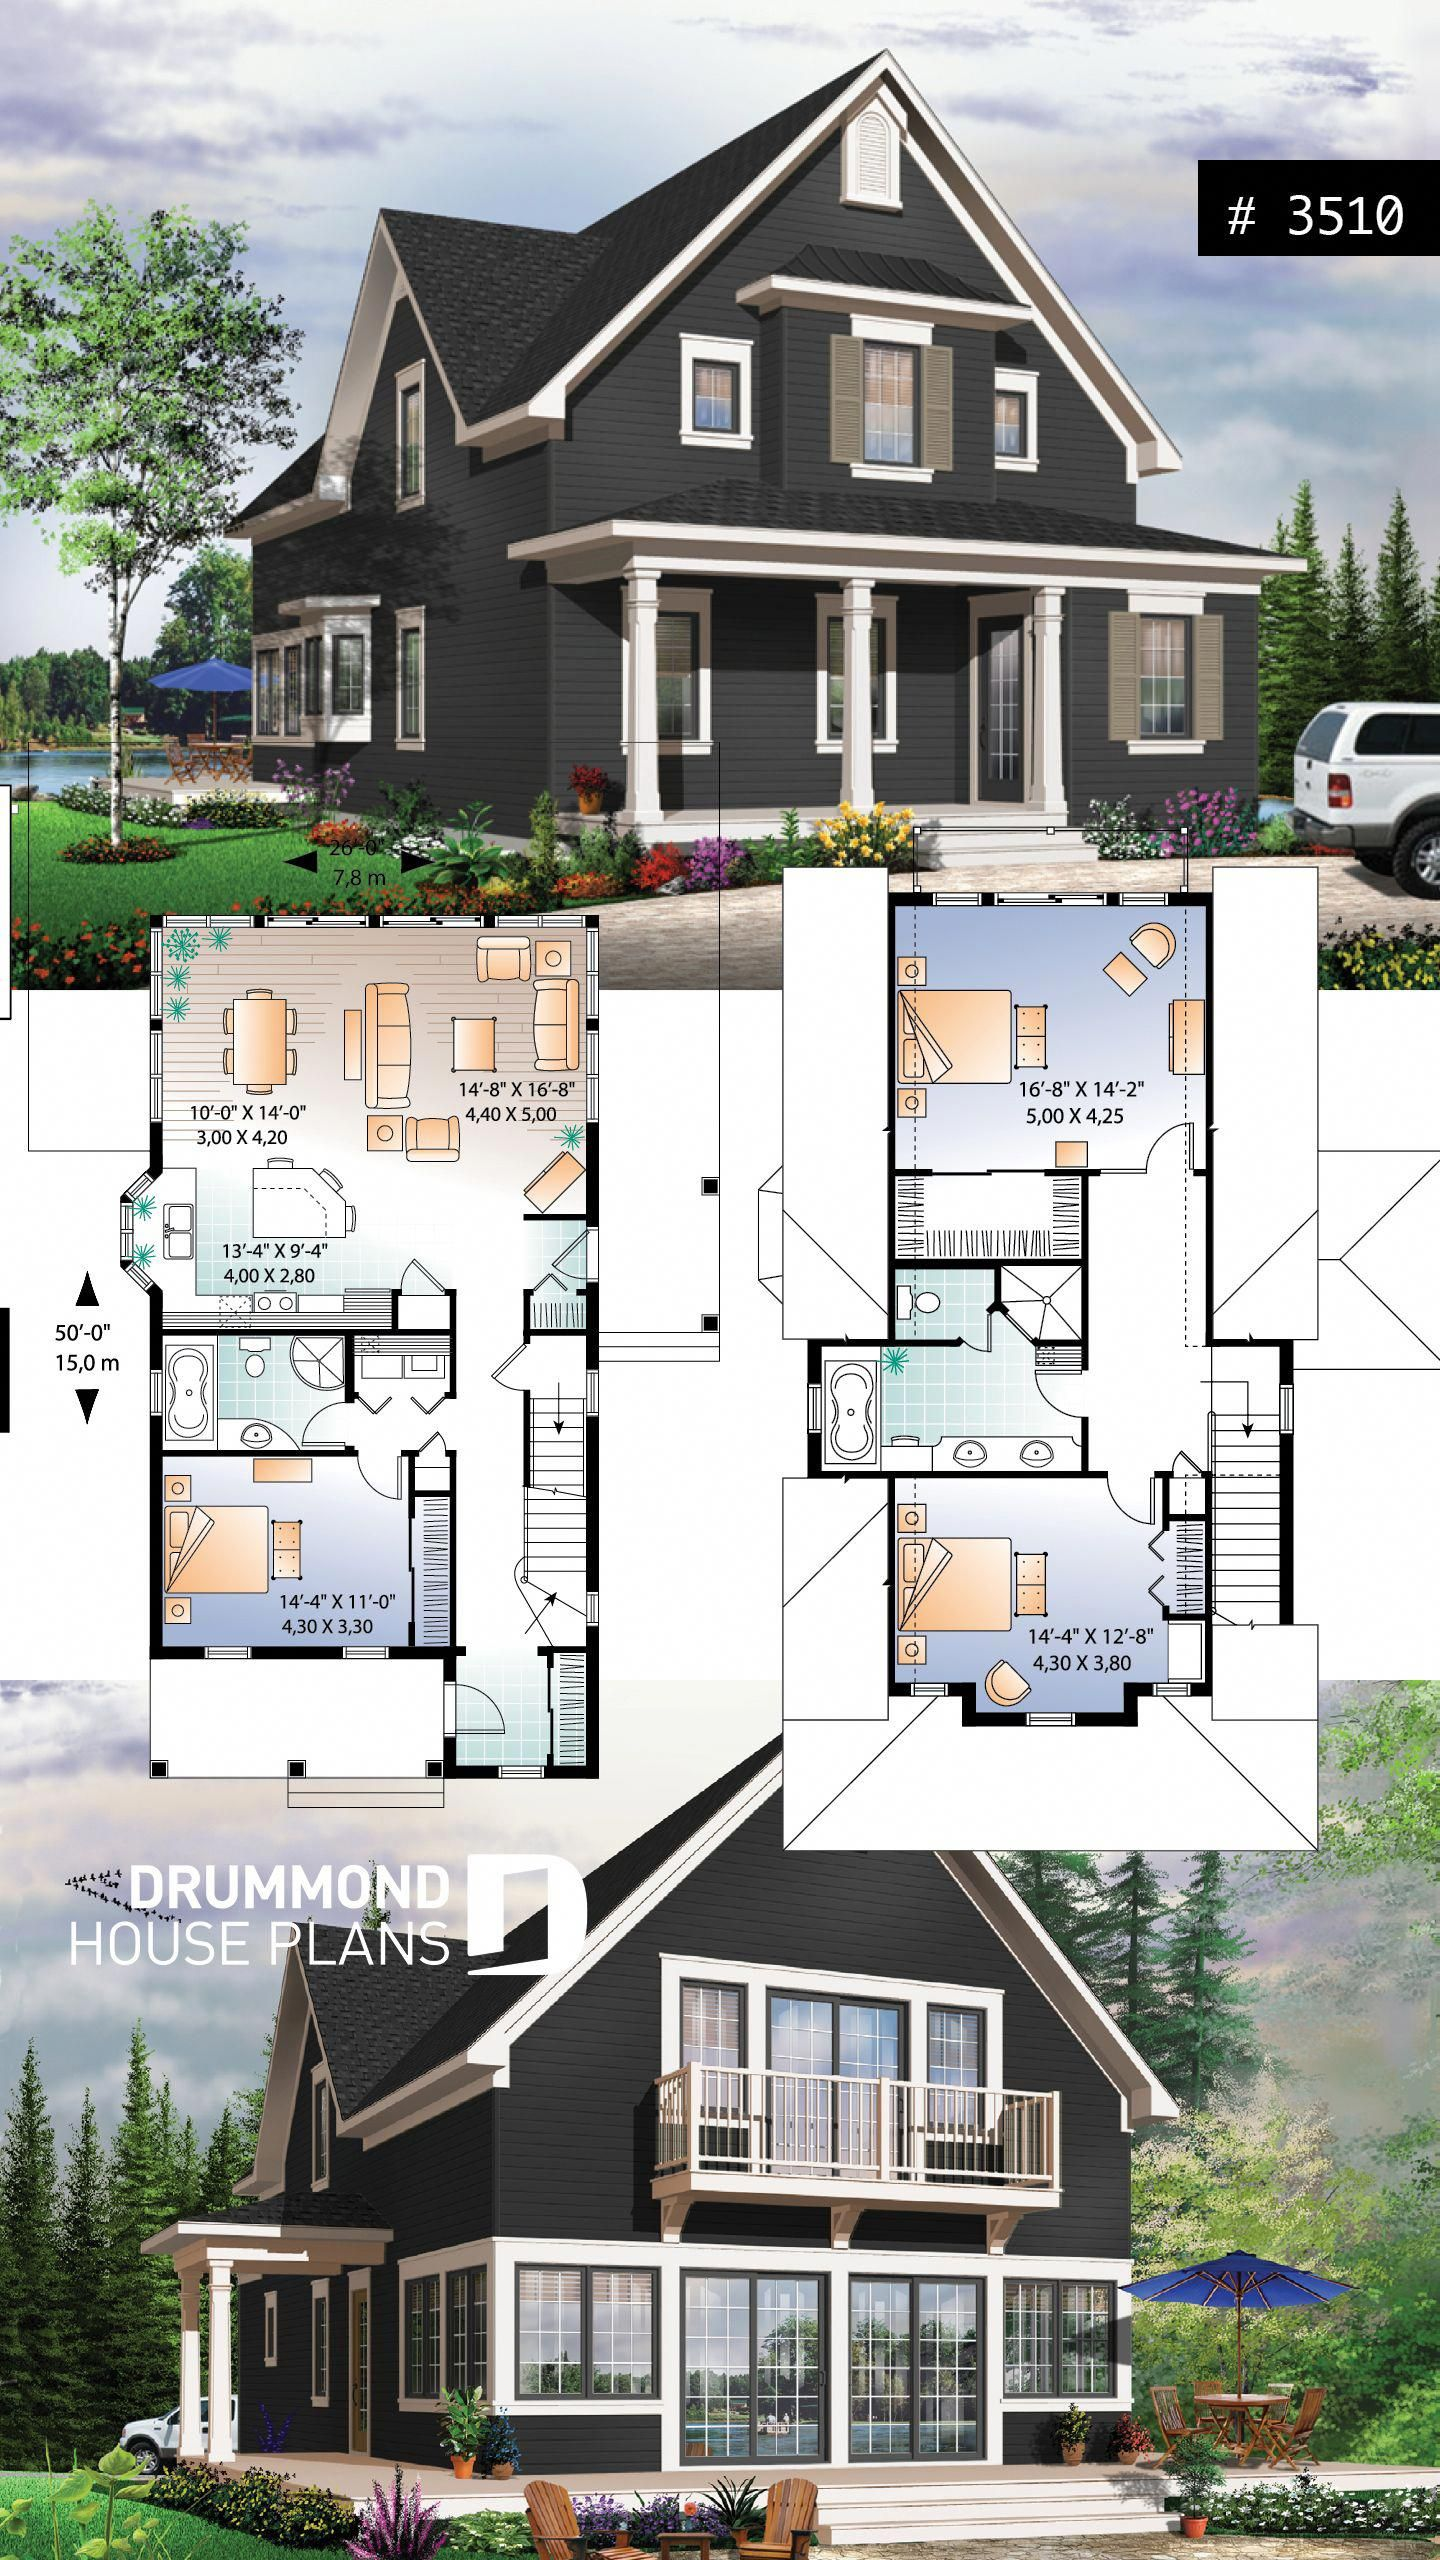 Visit Our Information Site For A Lot More Information On This Mind Blowing Photo Countryc Craftsman House Plans Sims House Plans Country House Plans